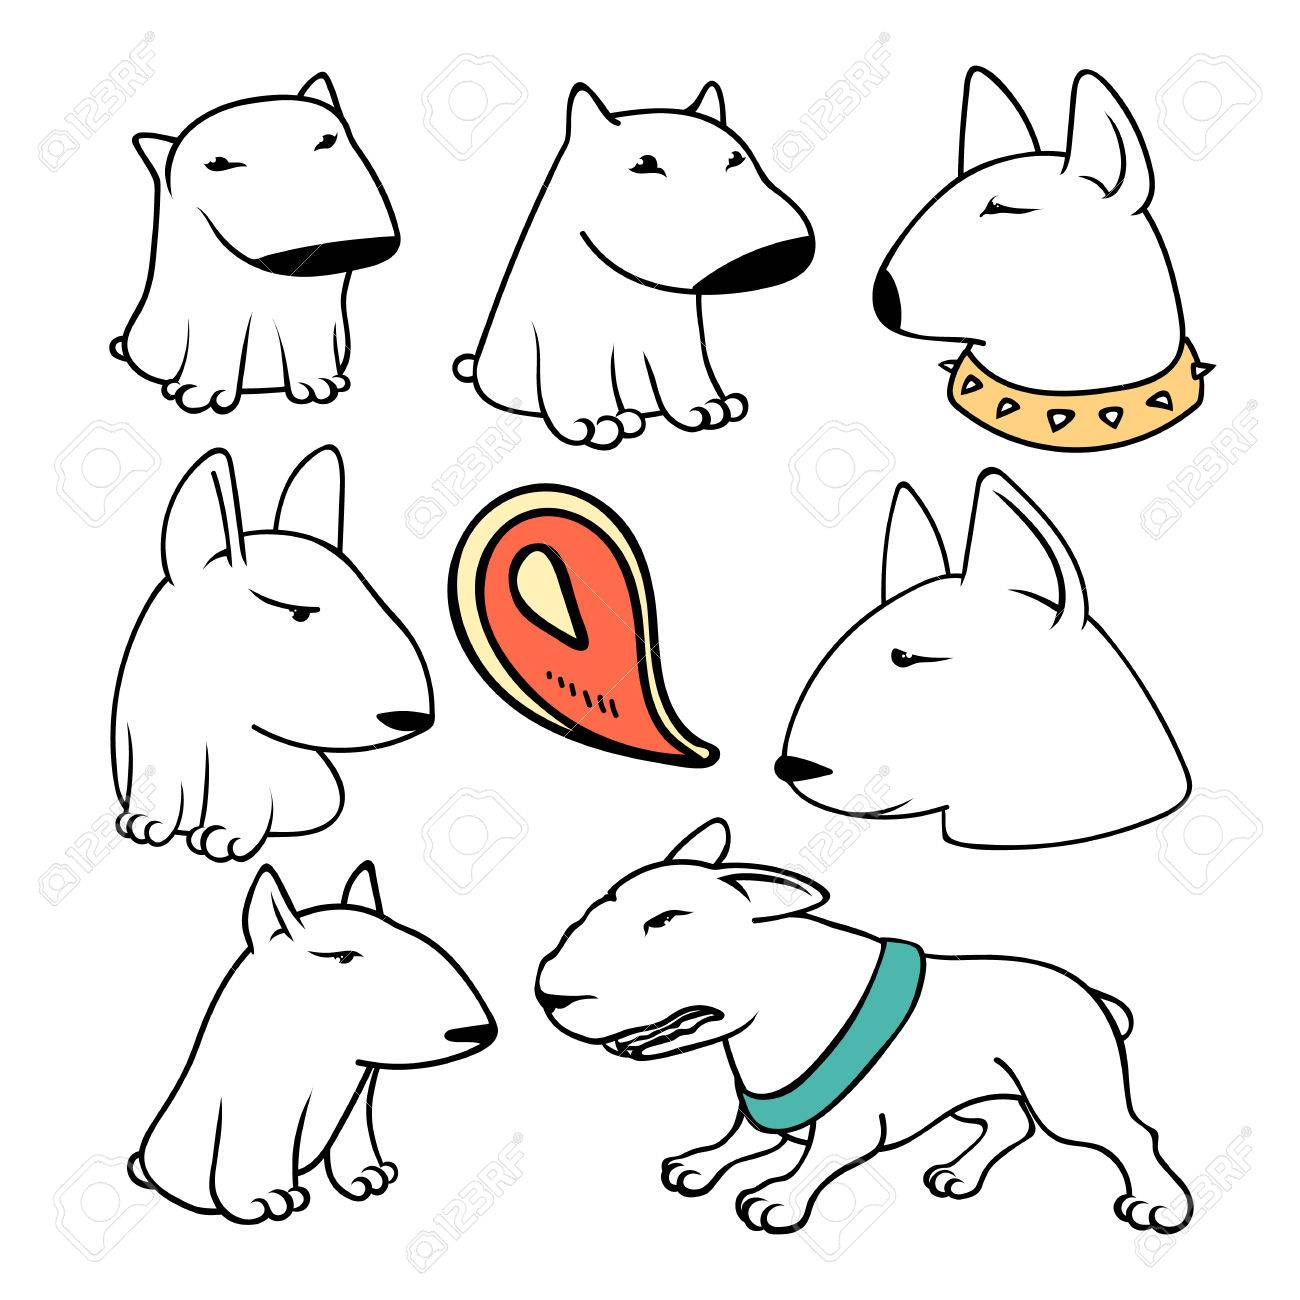 1300x1300 Dogs Characters Pitbull. Funny Animals Cartoon. Doodle Sticker